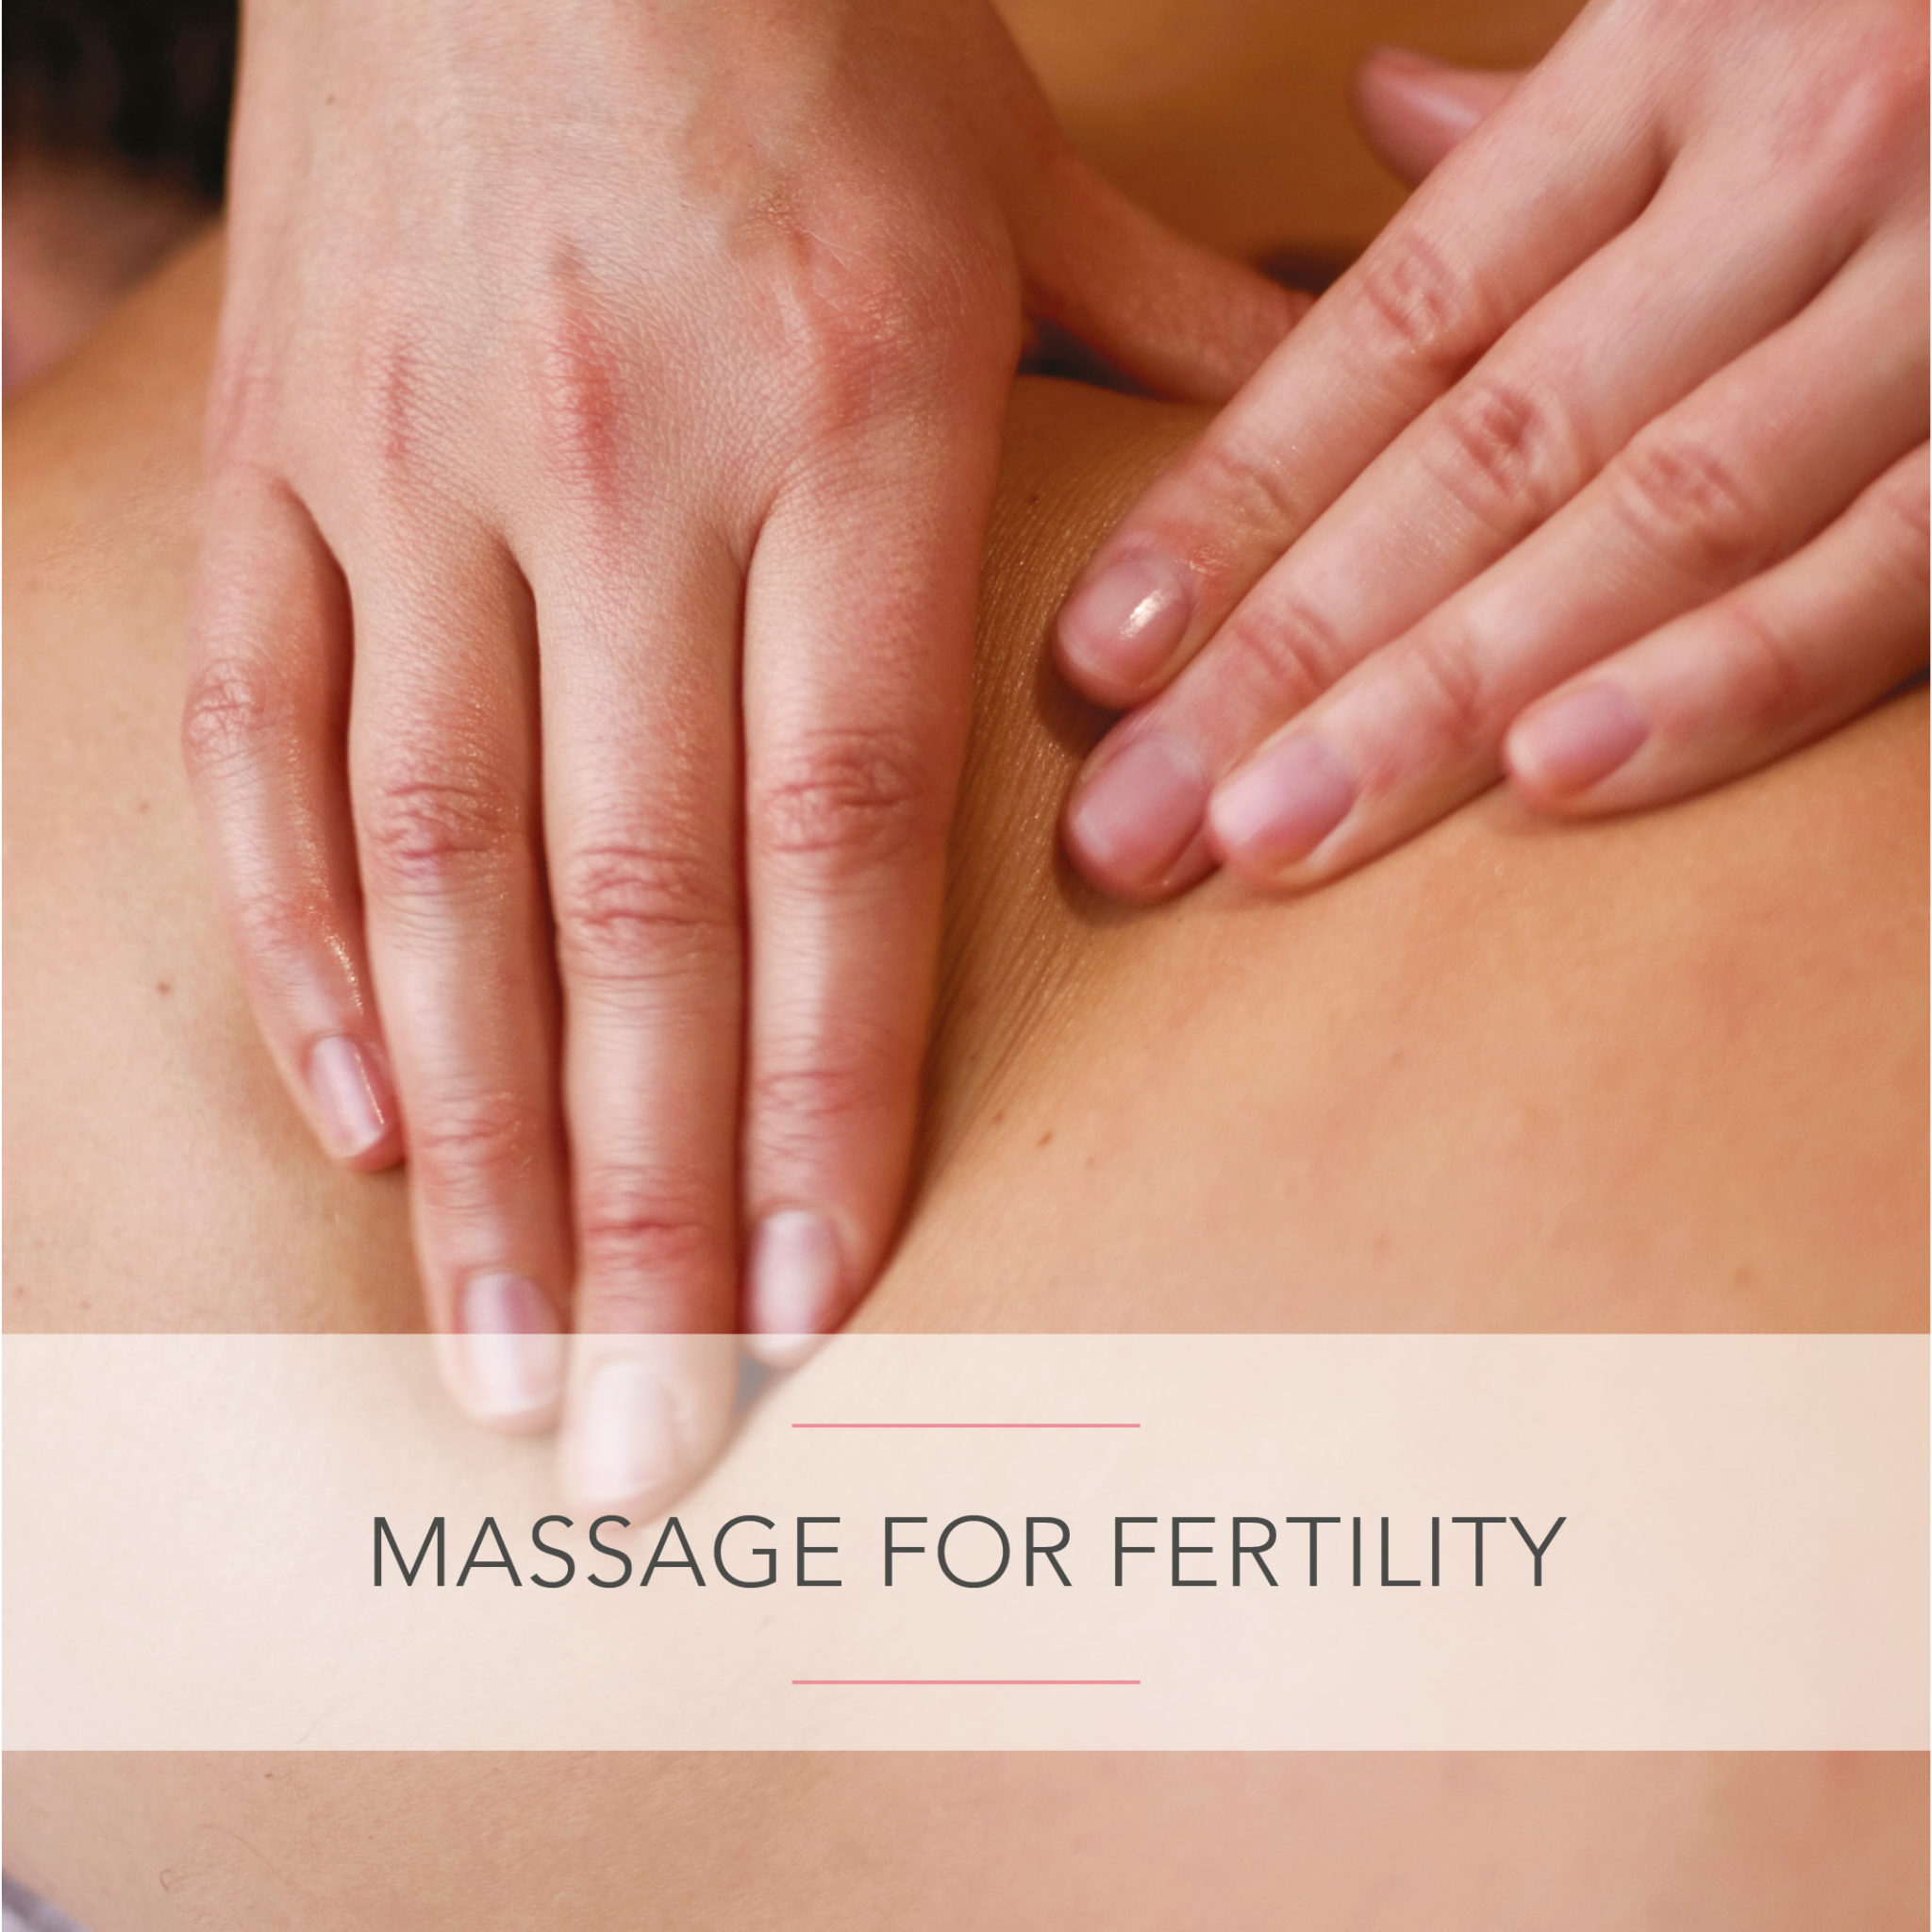 Complementary Fertility Therapies: Massage for Fertility